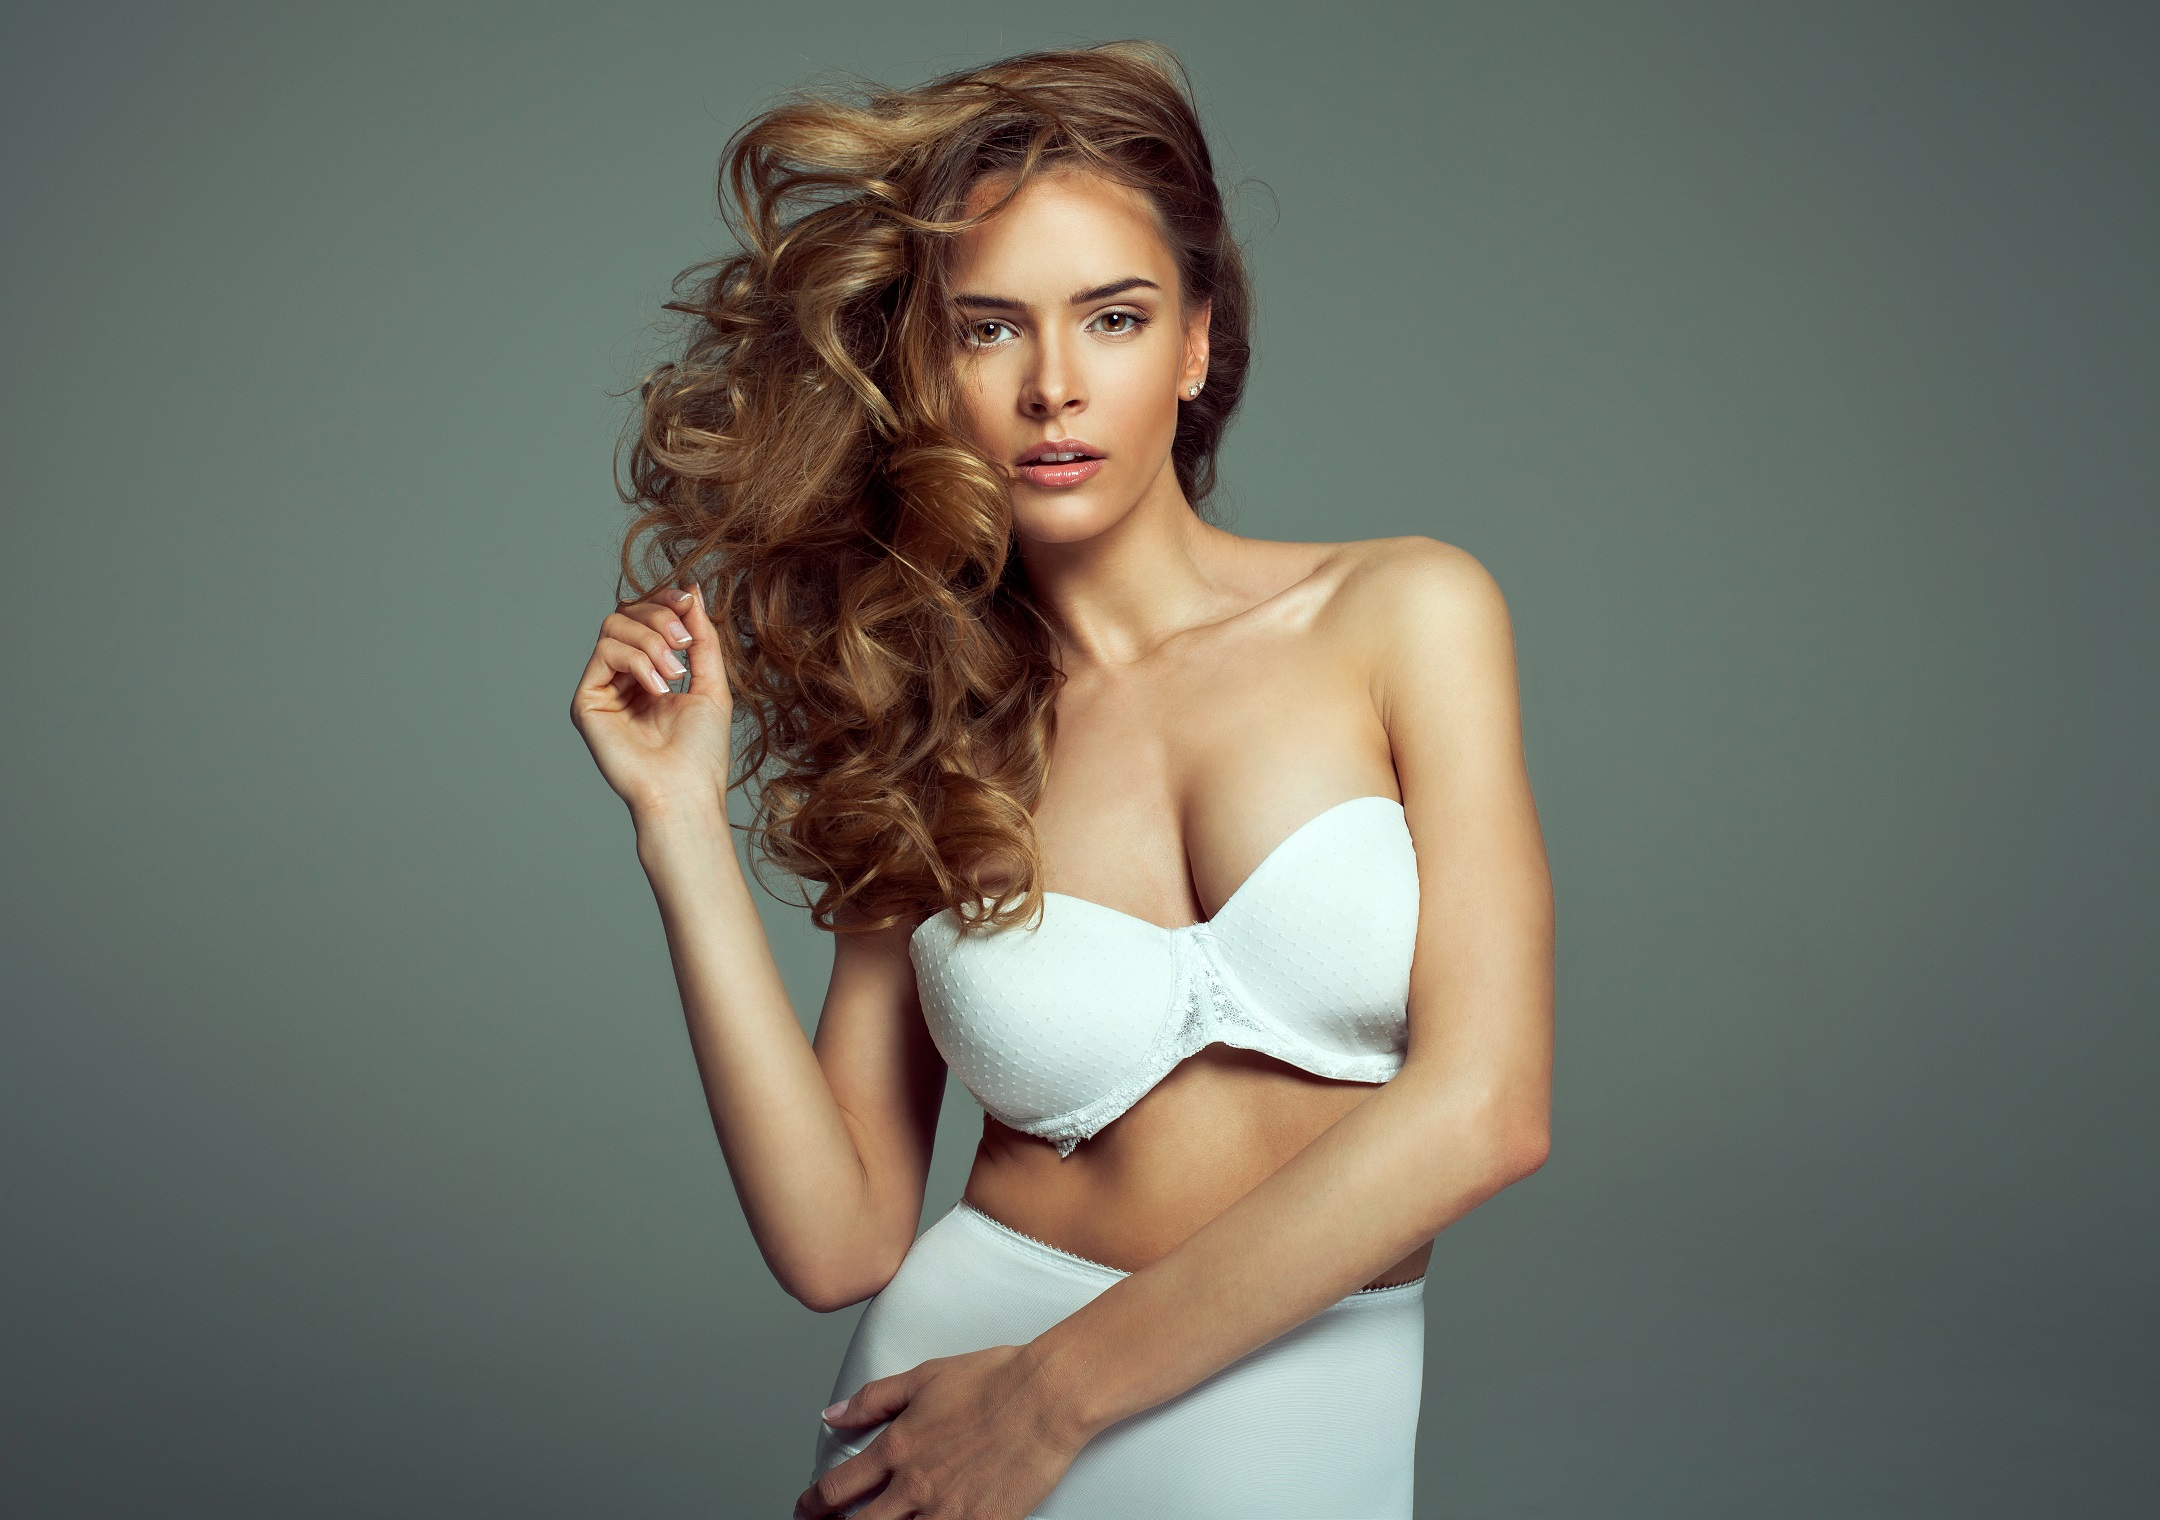 On the Implant Fence? Clarity on Typical Breast Augmentation Concerns